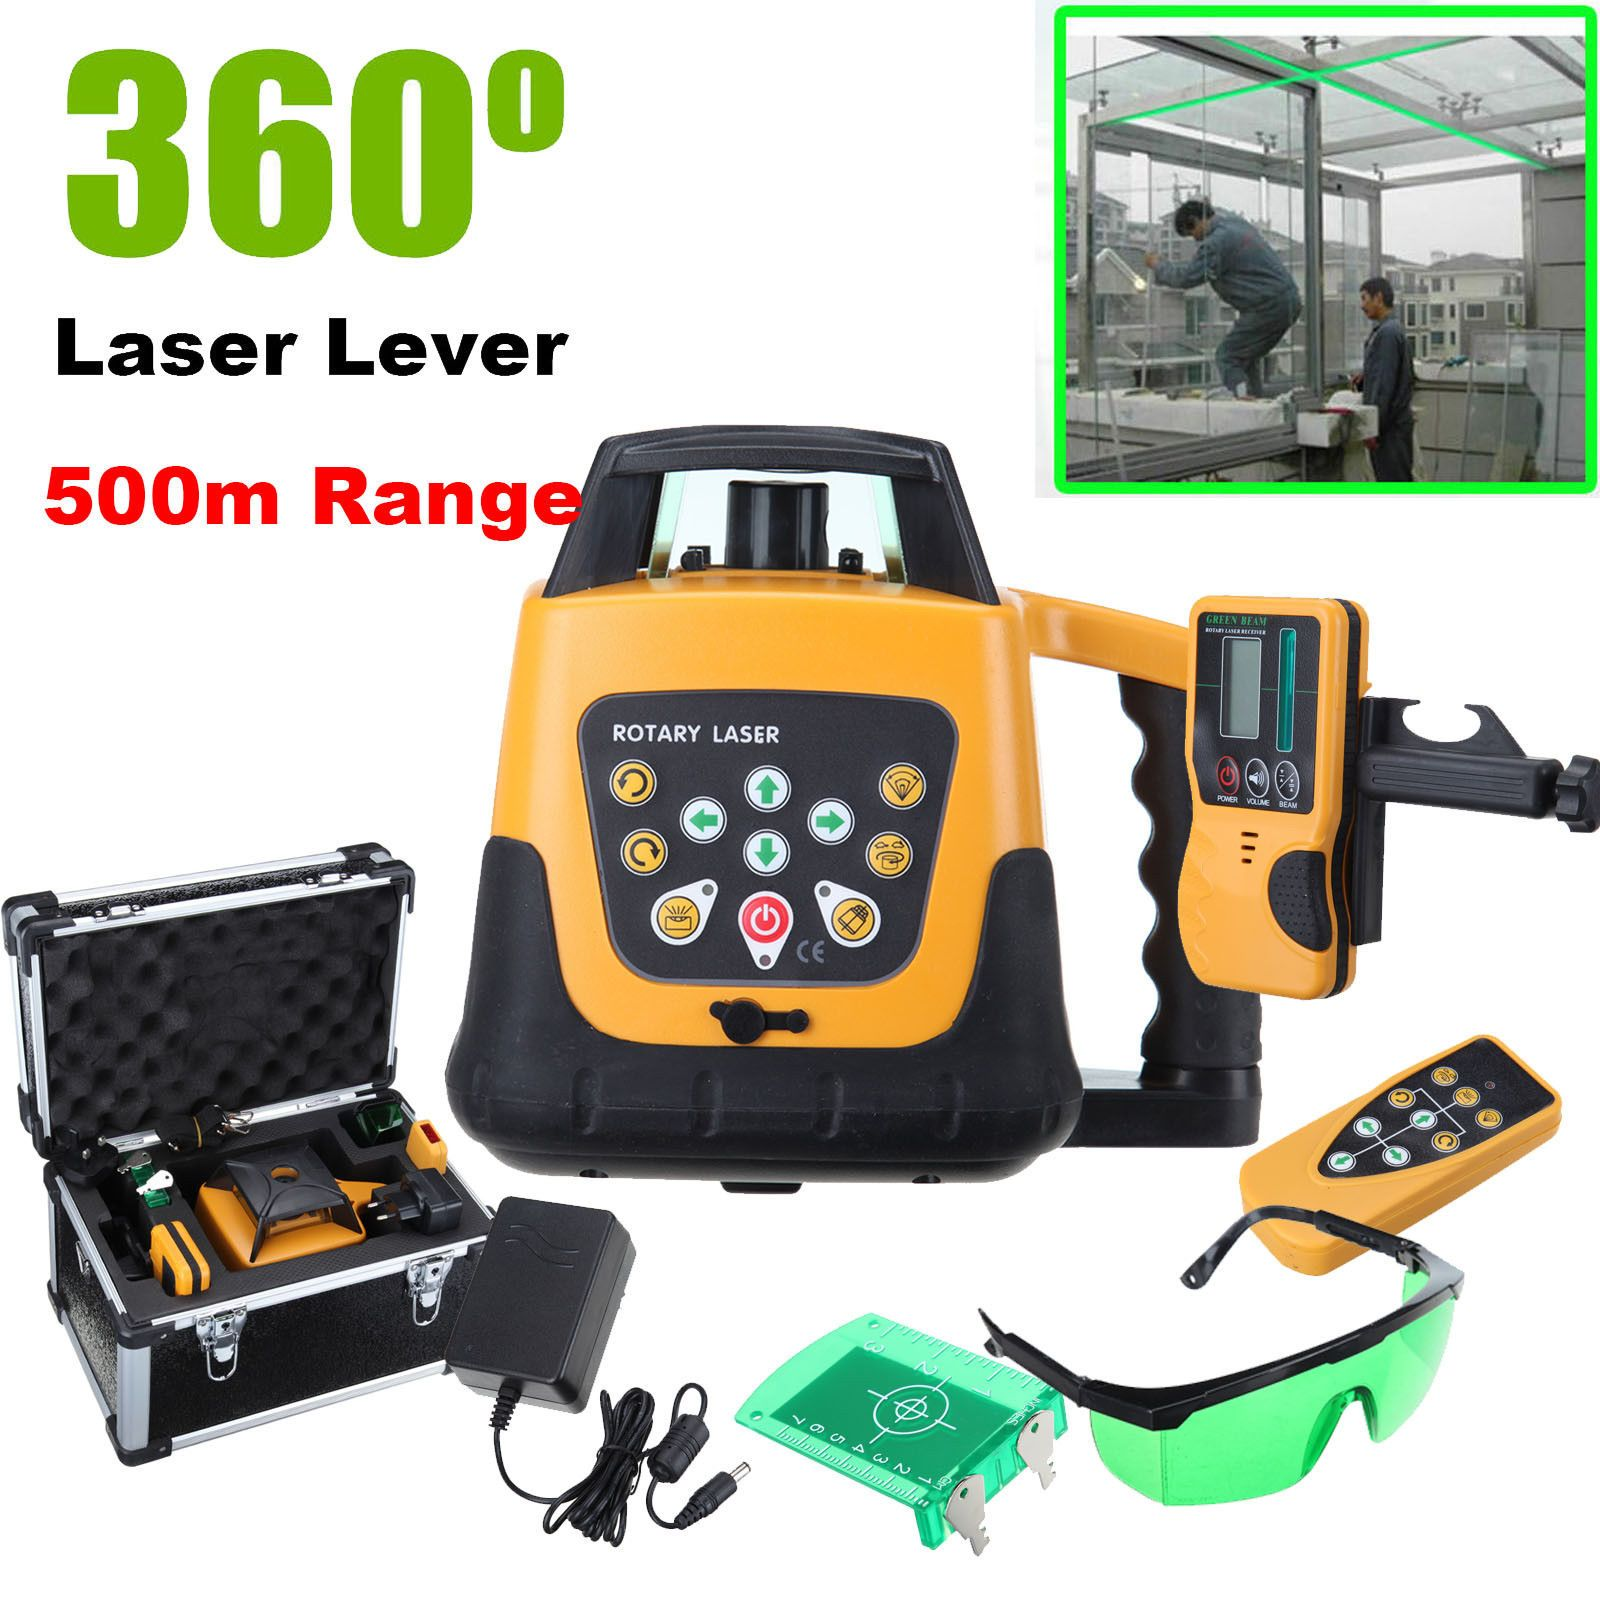 Selbst nivellierung Rotary/Rotierenden Green Laser Level Kit Mit Fall 500 mt Palette